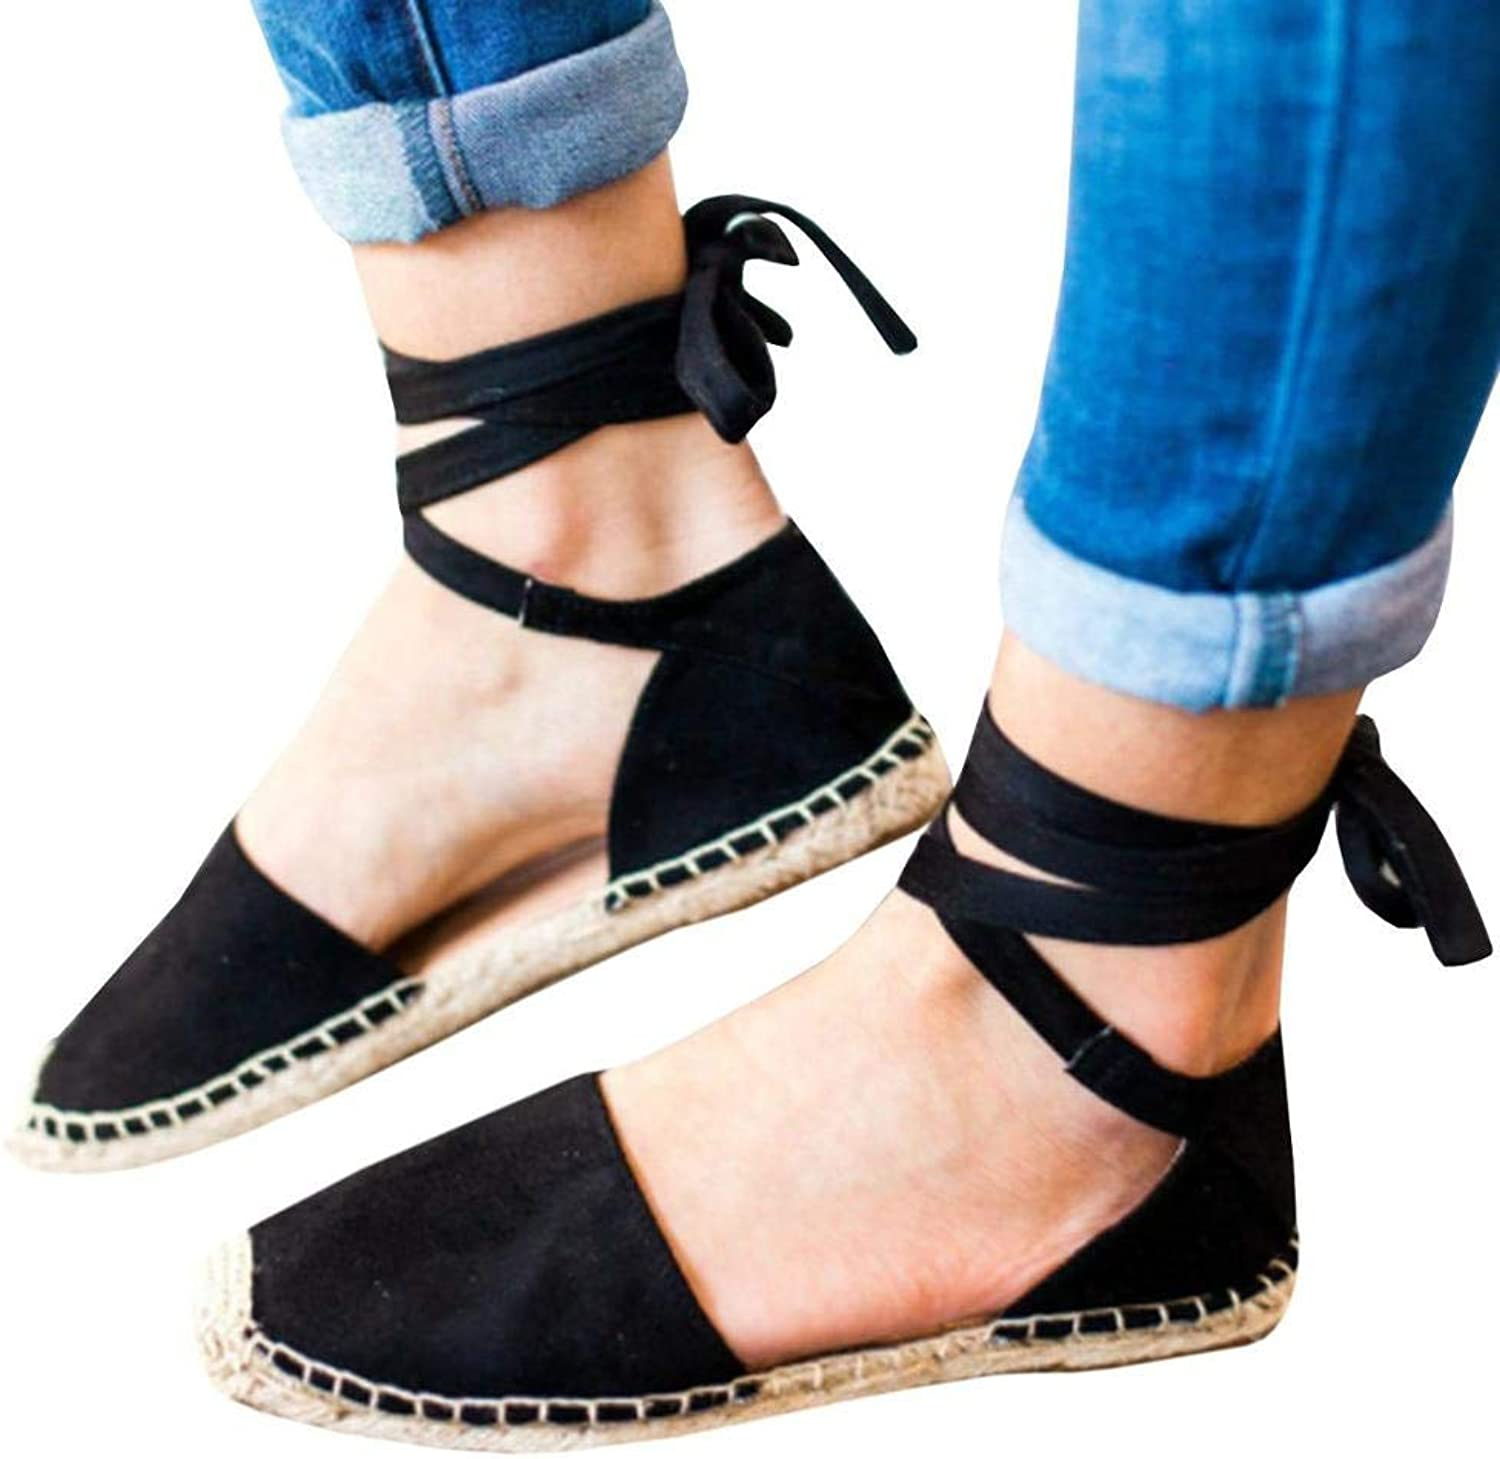 New Summer Sandals Ankle Strap Beach Sandals shoes for Women Comfortable Summer Sandals Black Flats